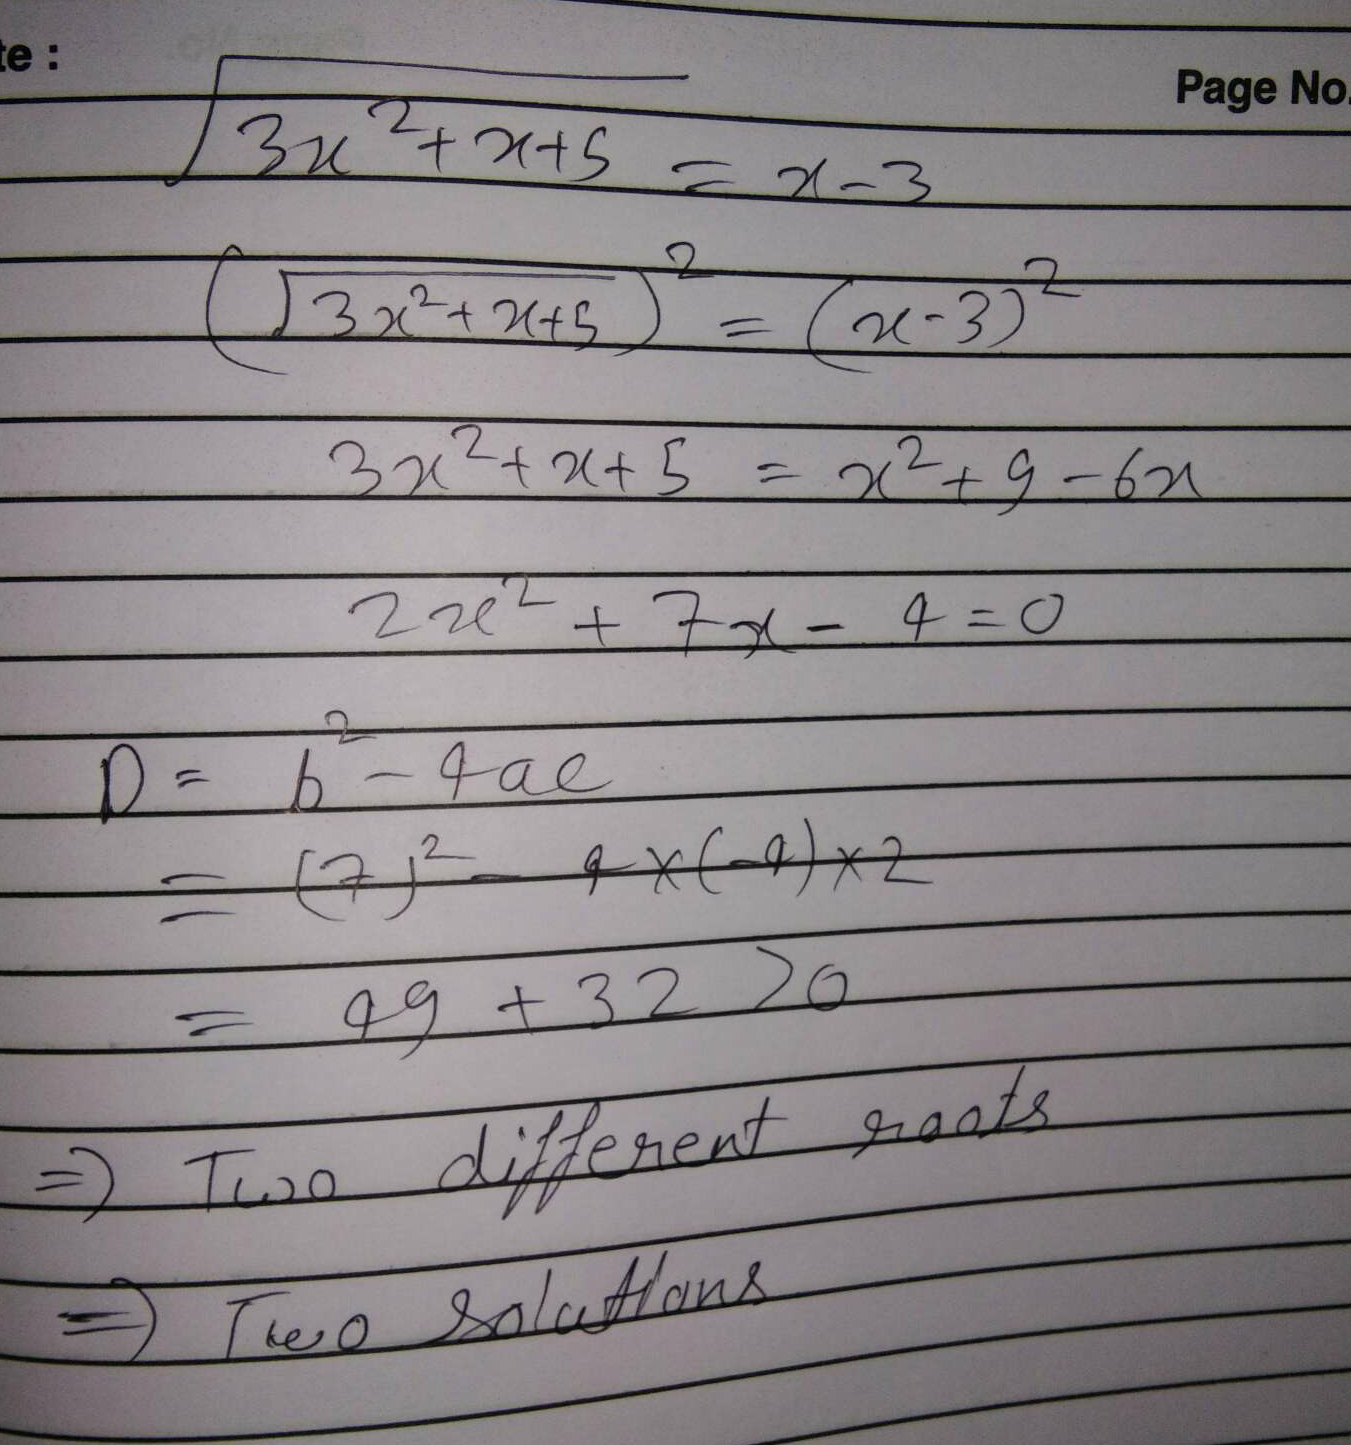 The equation √3x^2+x + 5 = x - 3, where x is real, has :